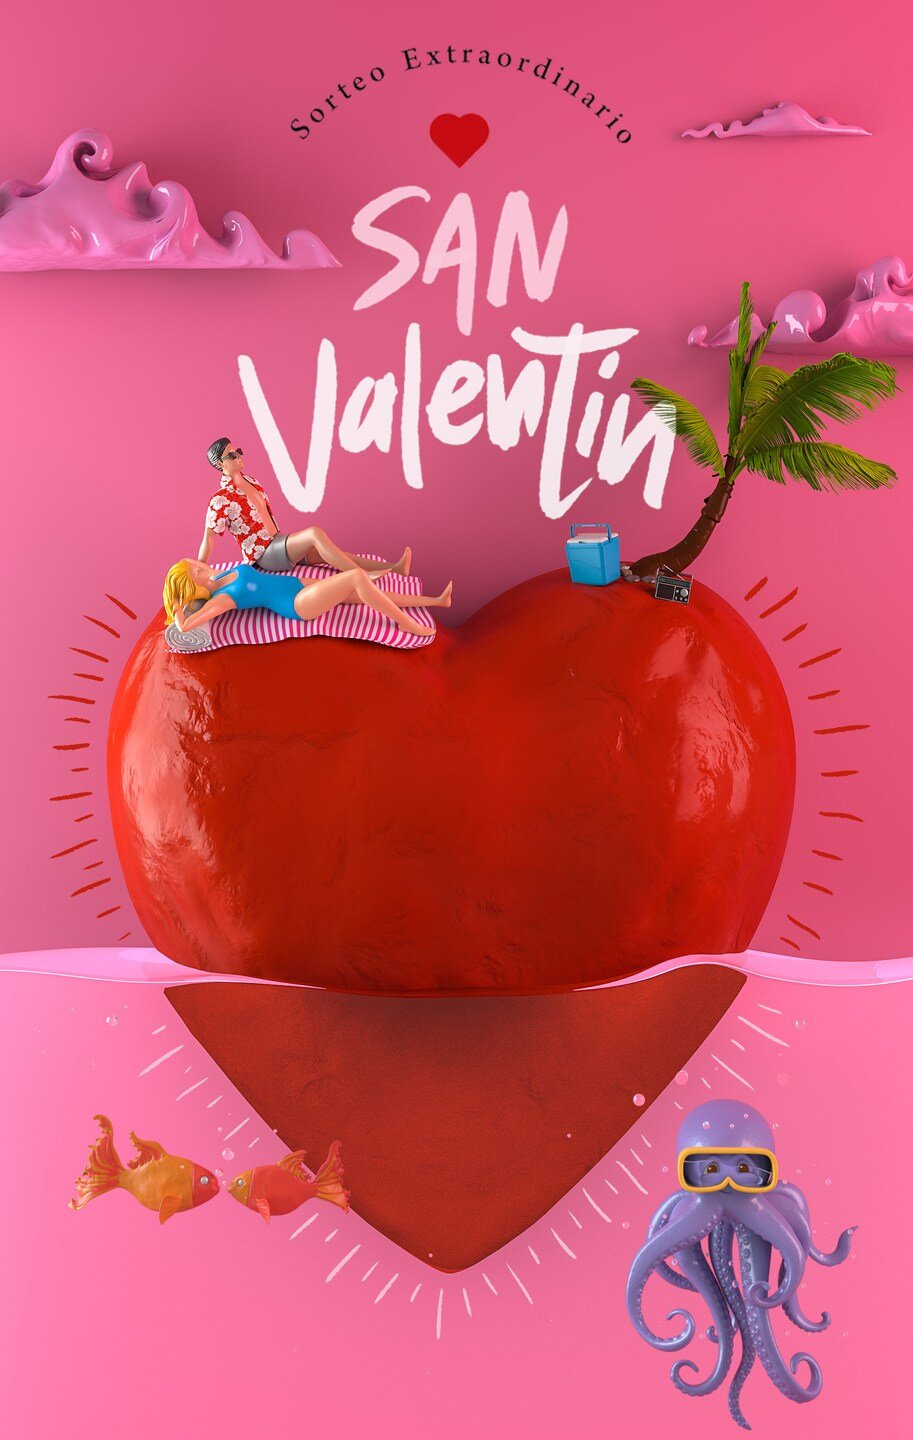 Spanish_National_Lottery_SanValentin_Campaign.jpg